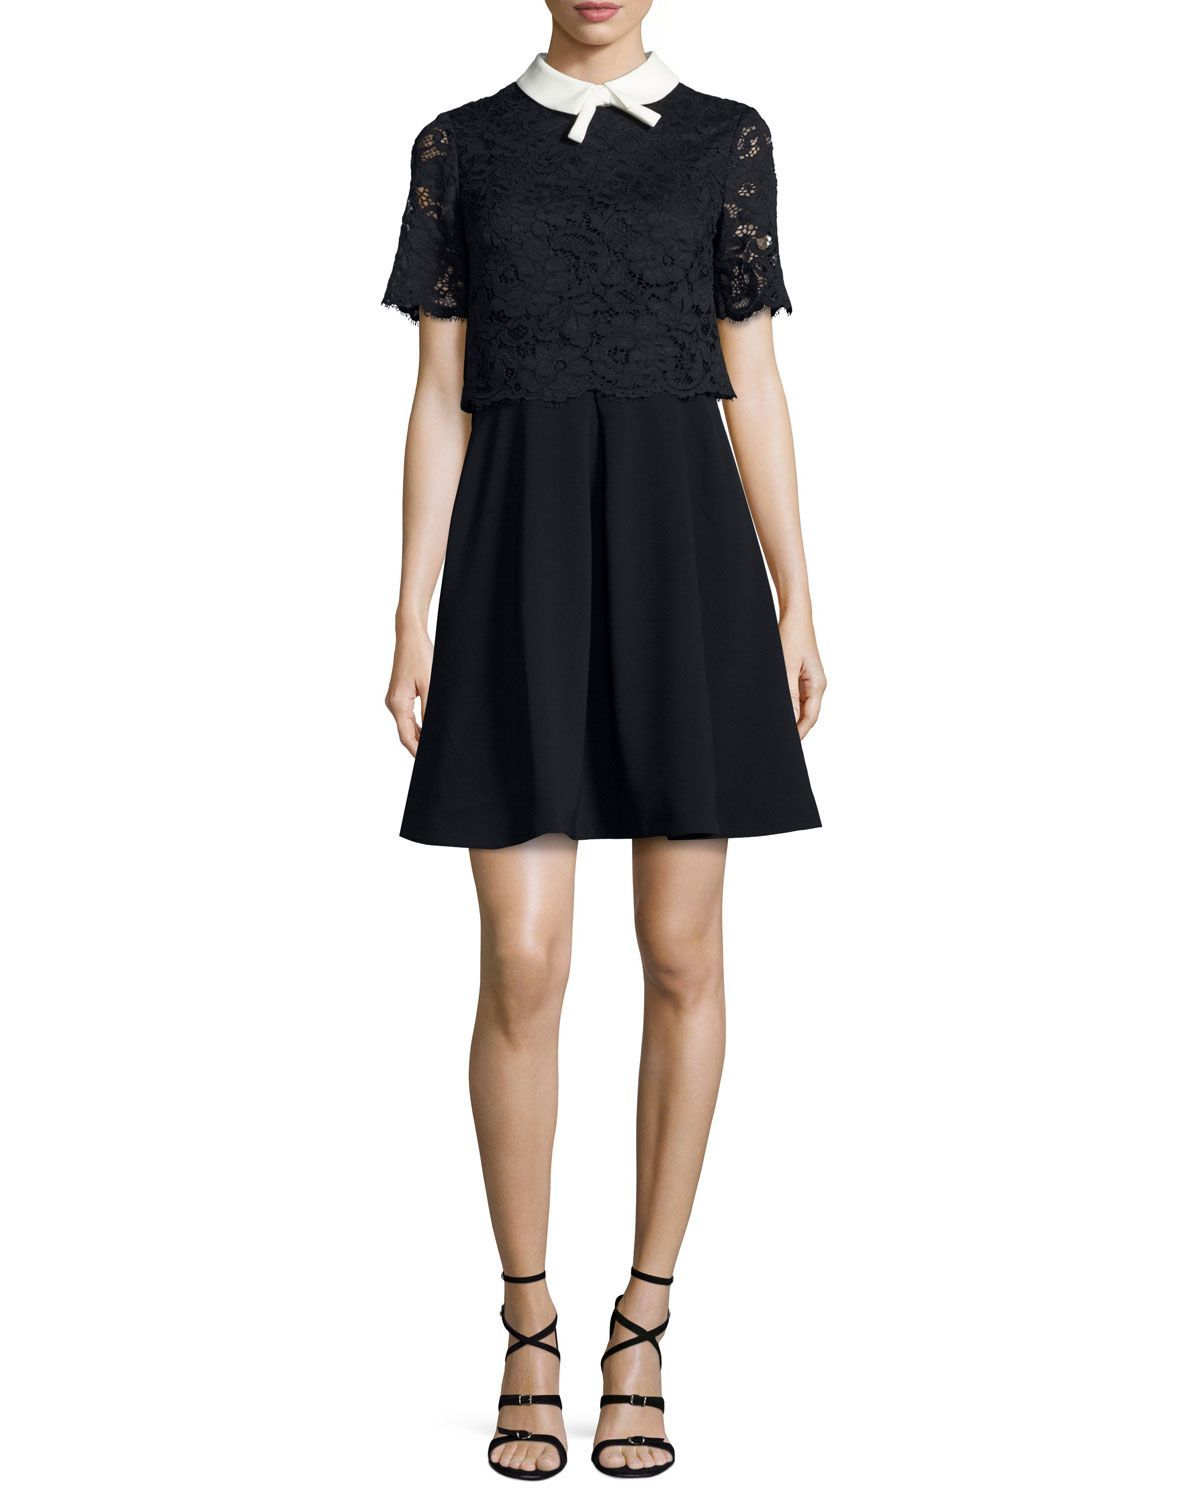 Dixxy lacepopover dress navy products pinterest dresses ps